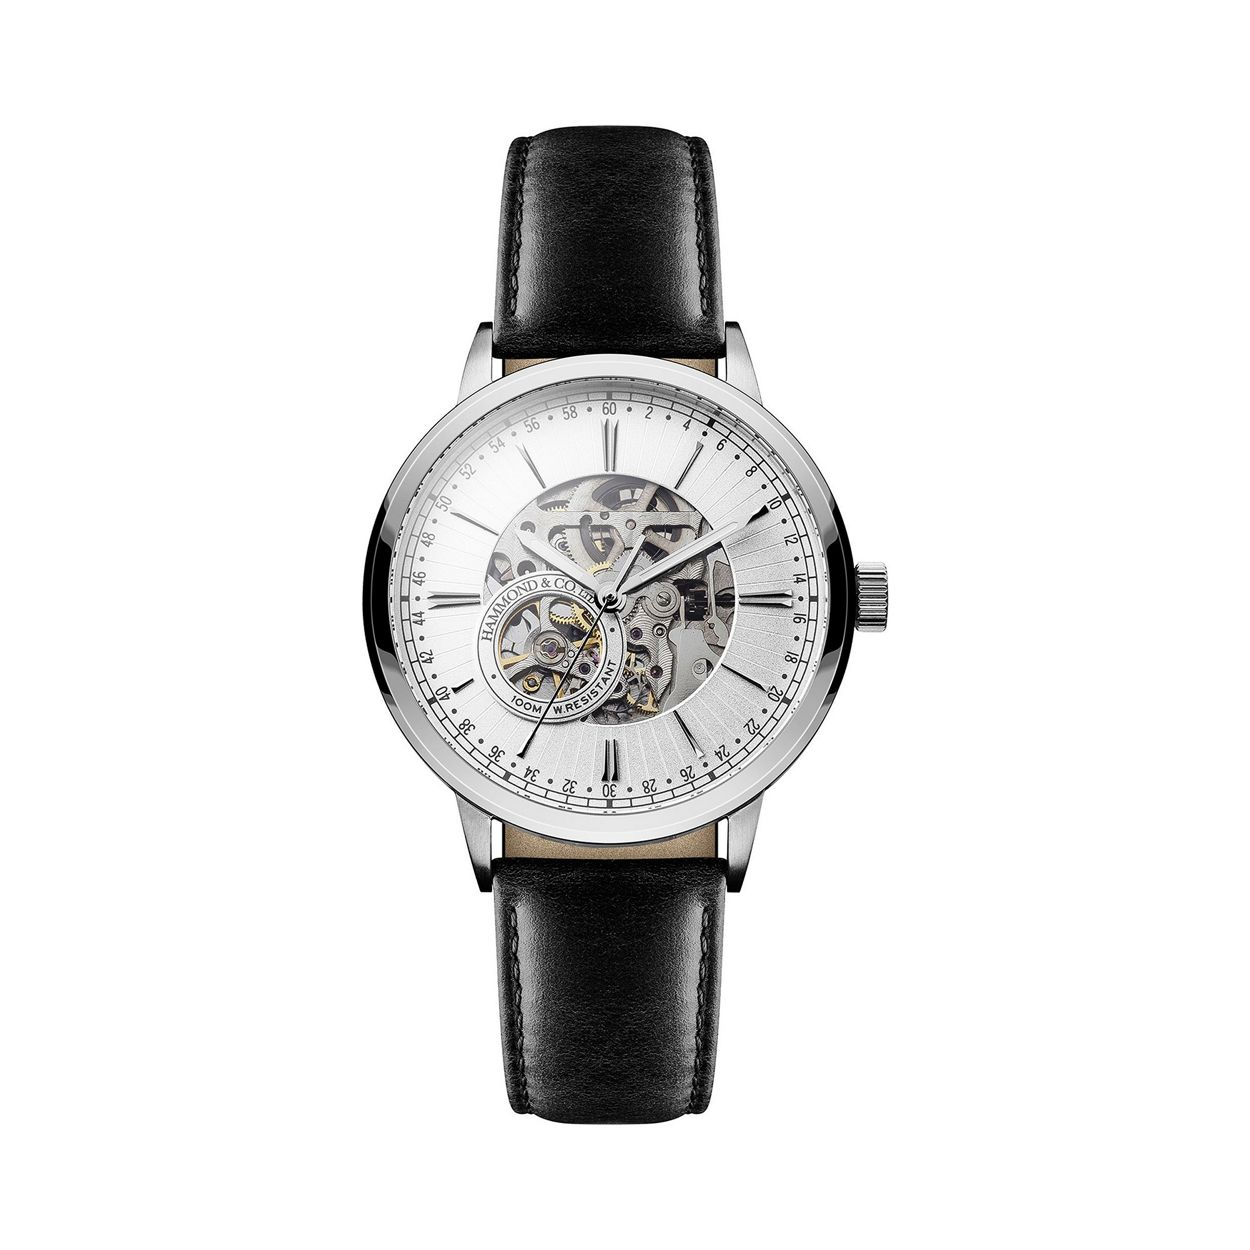 Hammond & Co. by Patrick Grant Mens' mechanical watch with black leather strap